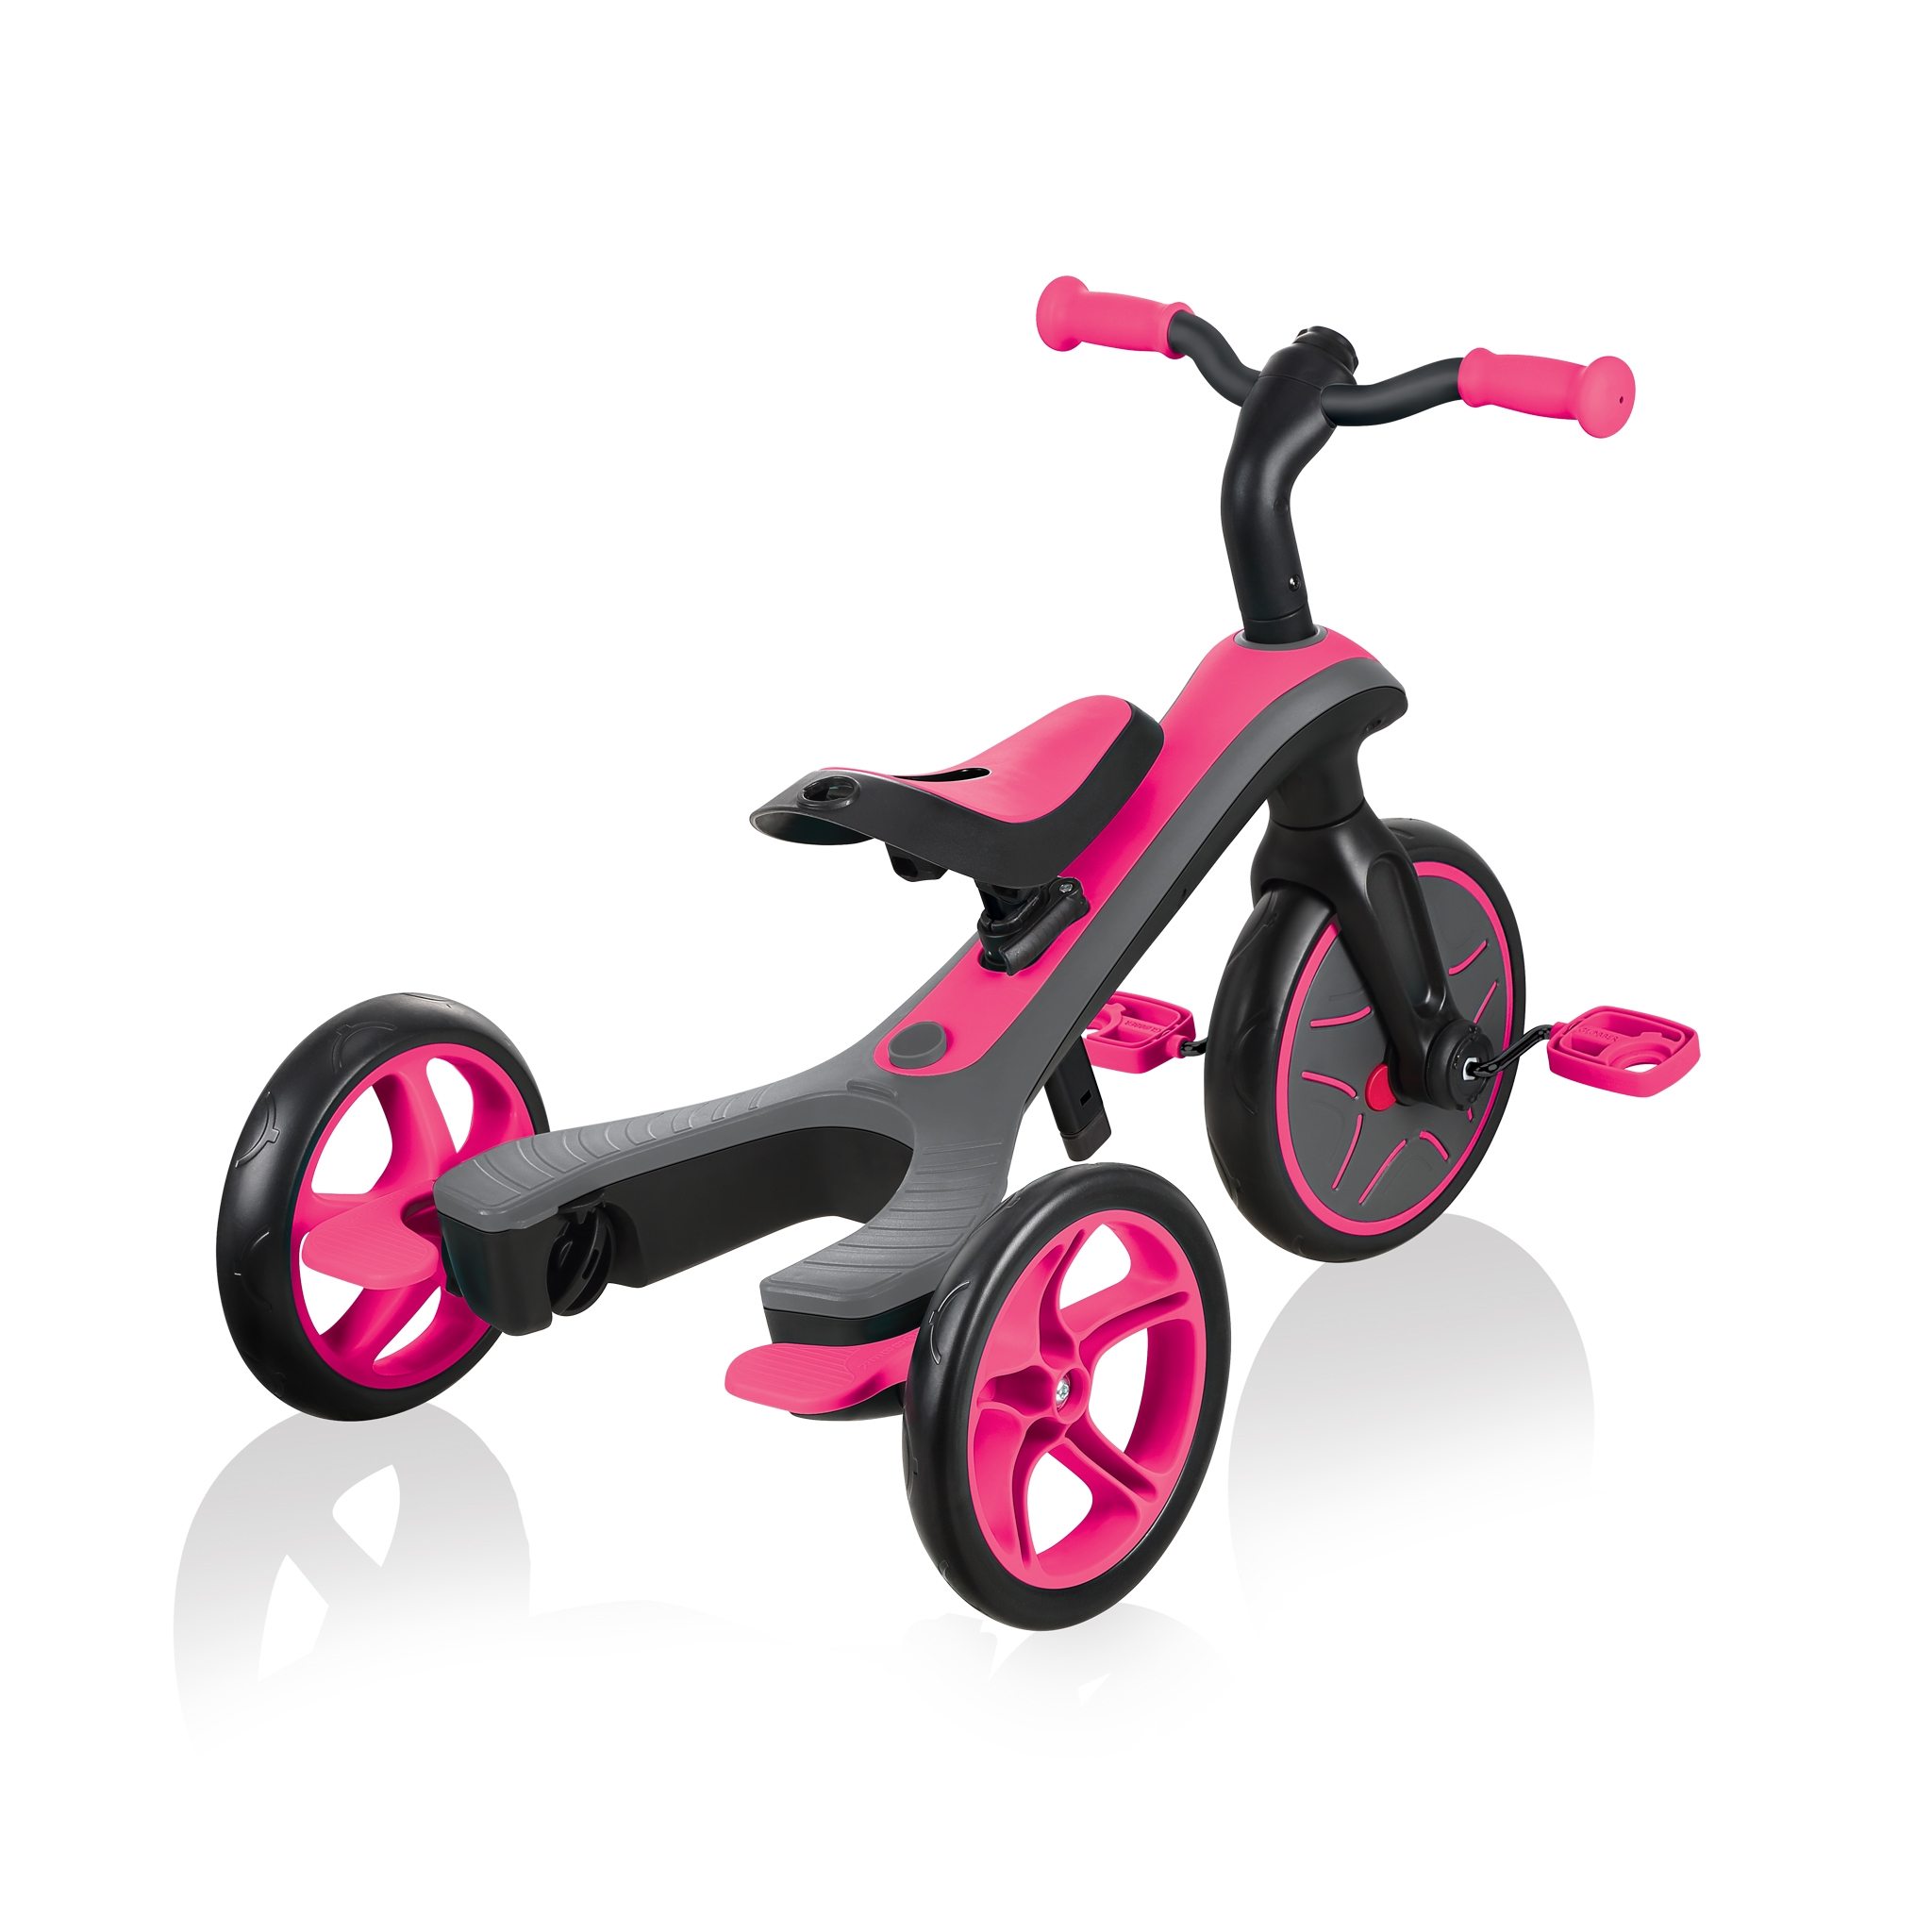 Globber-EXPLORER-TRIKE-4in1-all-in-one-baby-tricycle-and-kids-balance-bike-with-patented-wheel-mechanism-transformation